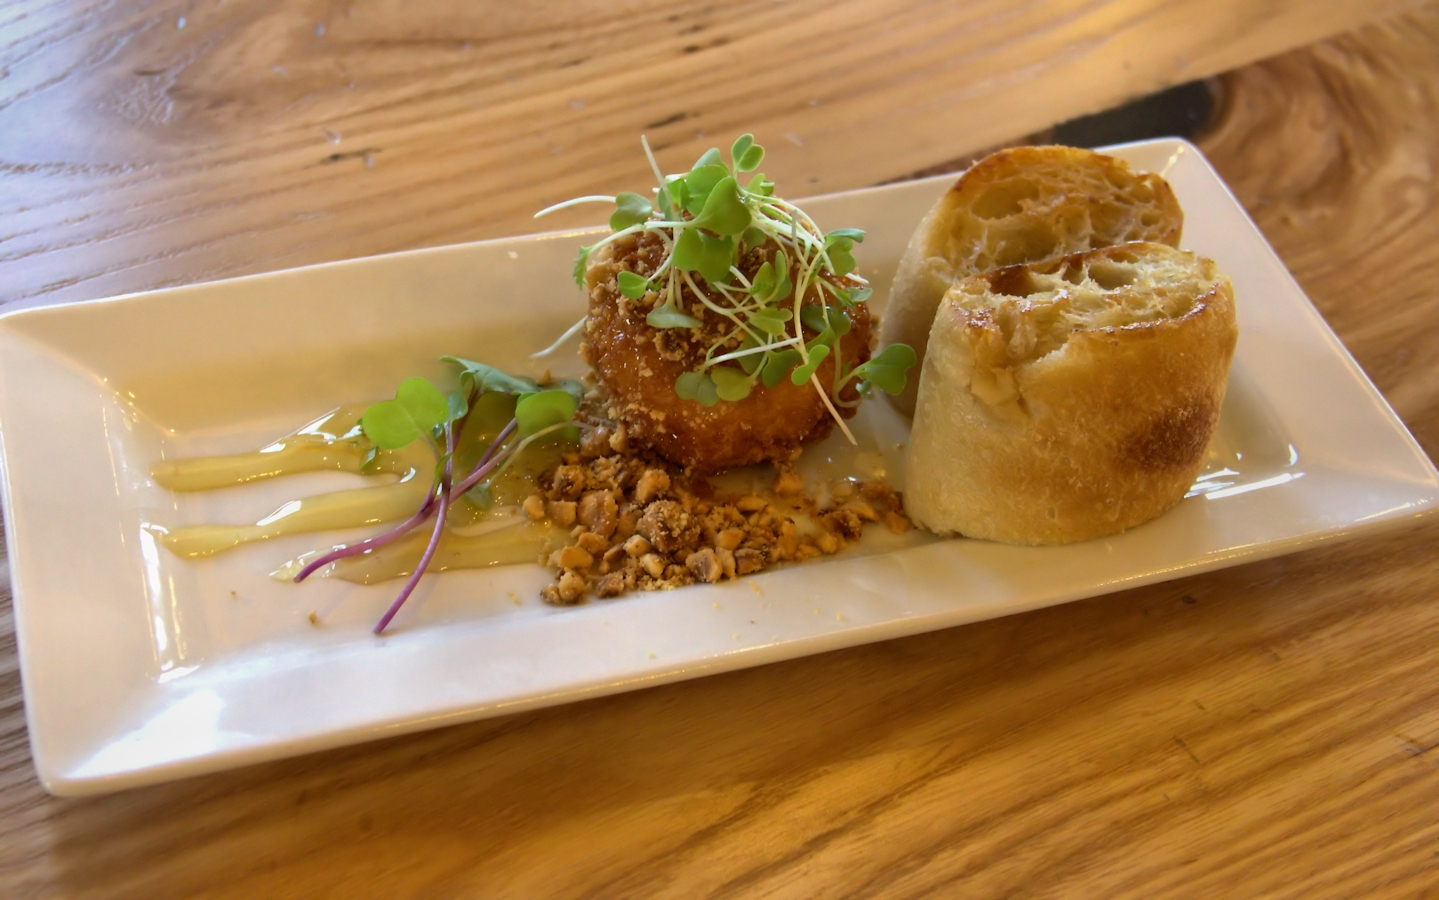 Fried goat cheese with hazelnuts and honey